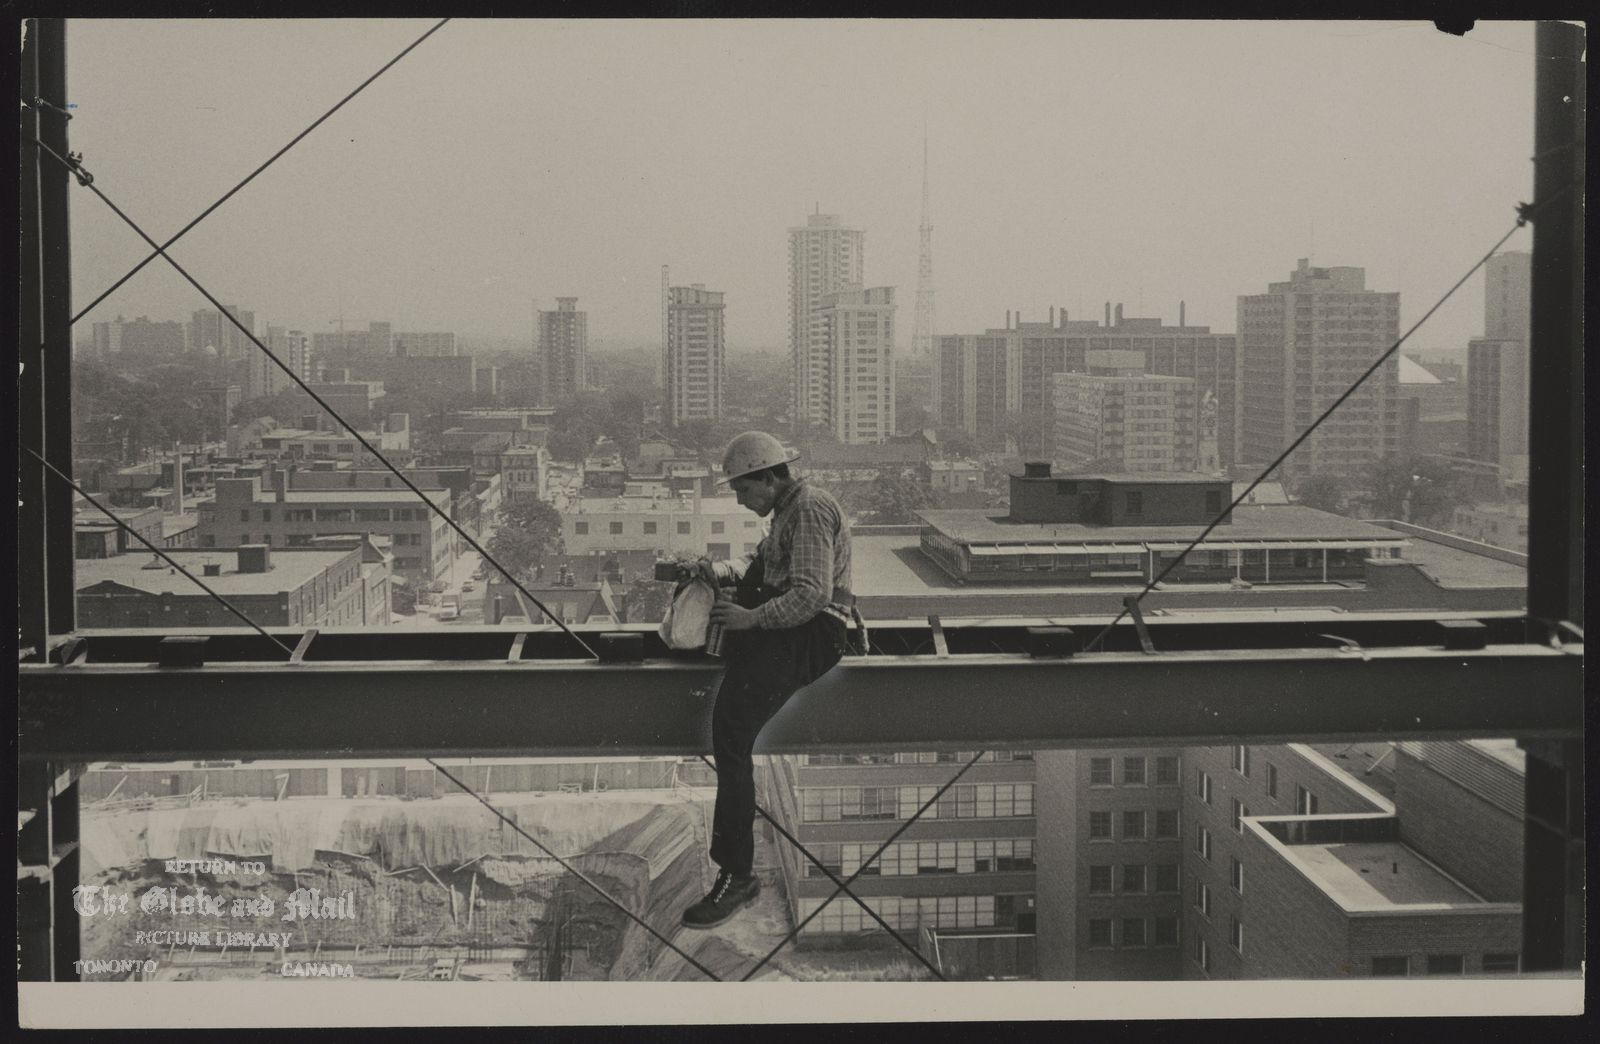 The notes transcribed from the back of this photograph are as follows: CONSTRUCTION Perched comfortably on a girder with a magnificent view of Toronto around him, steel worker Walter Stein, a commuter from Keswick, enjoys solitary lunch on rapidly rising Queen's Park project. Four towers will house 9,000 civil servants working in scattered location in Toronto.